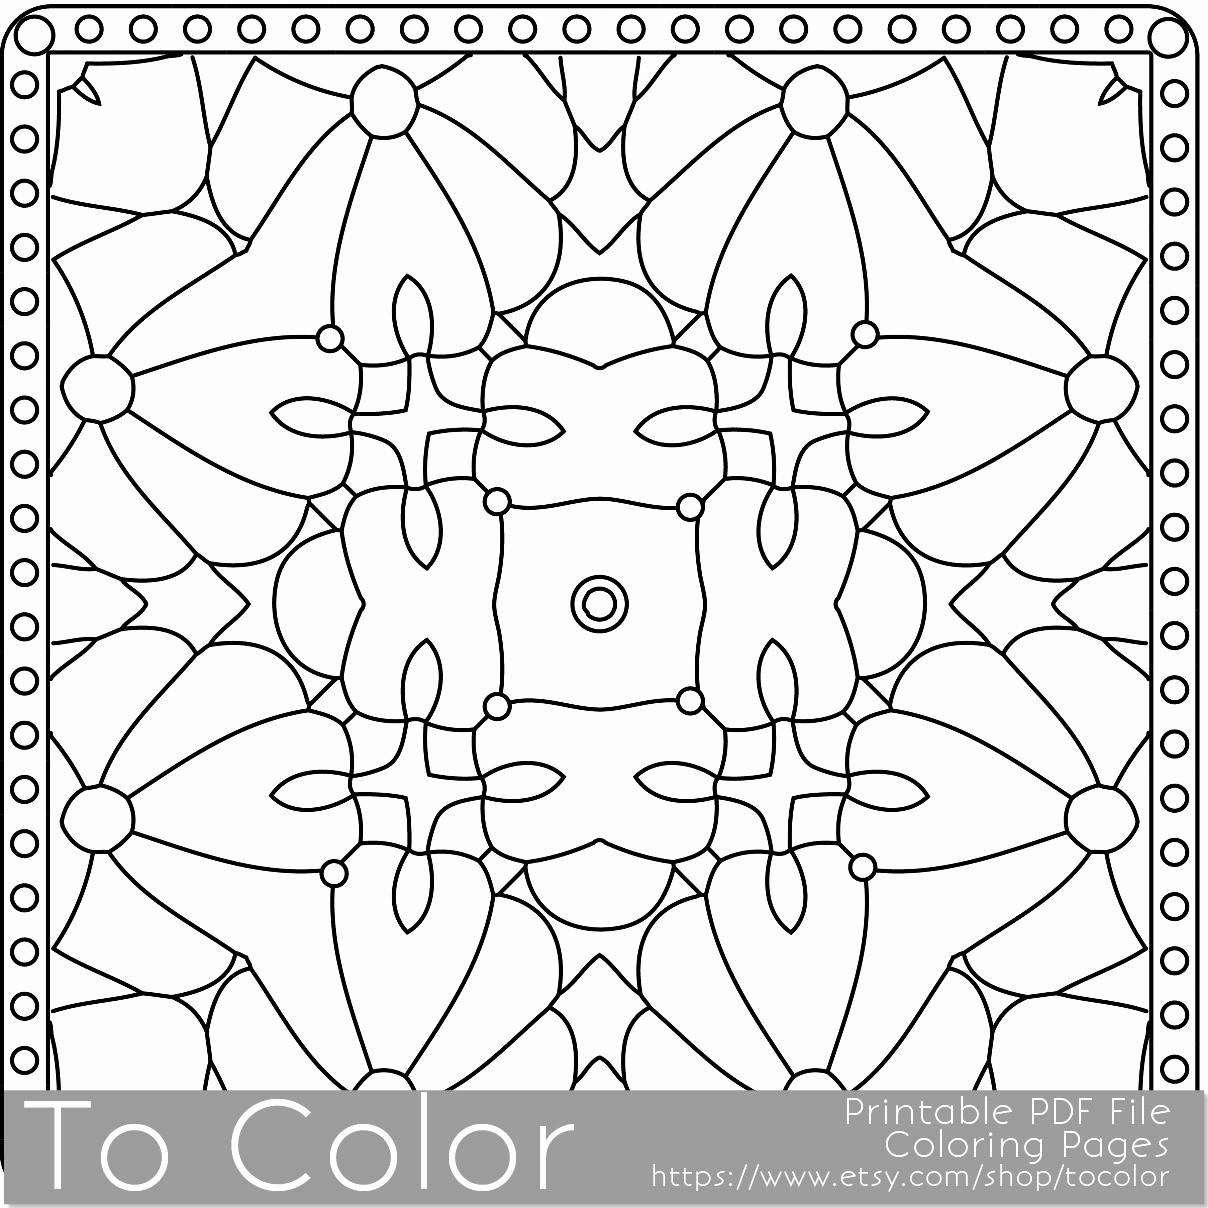 picture of a flower vase to color of free printable coloring pages of flower elegant cool vases flower for free printable coloring pages of flower elegant cool vases flower vase coloring page pages flowers in